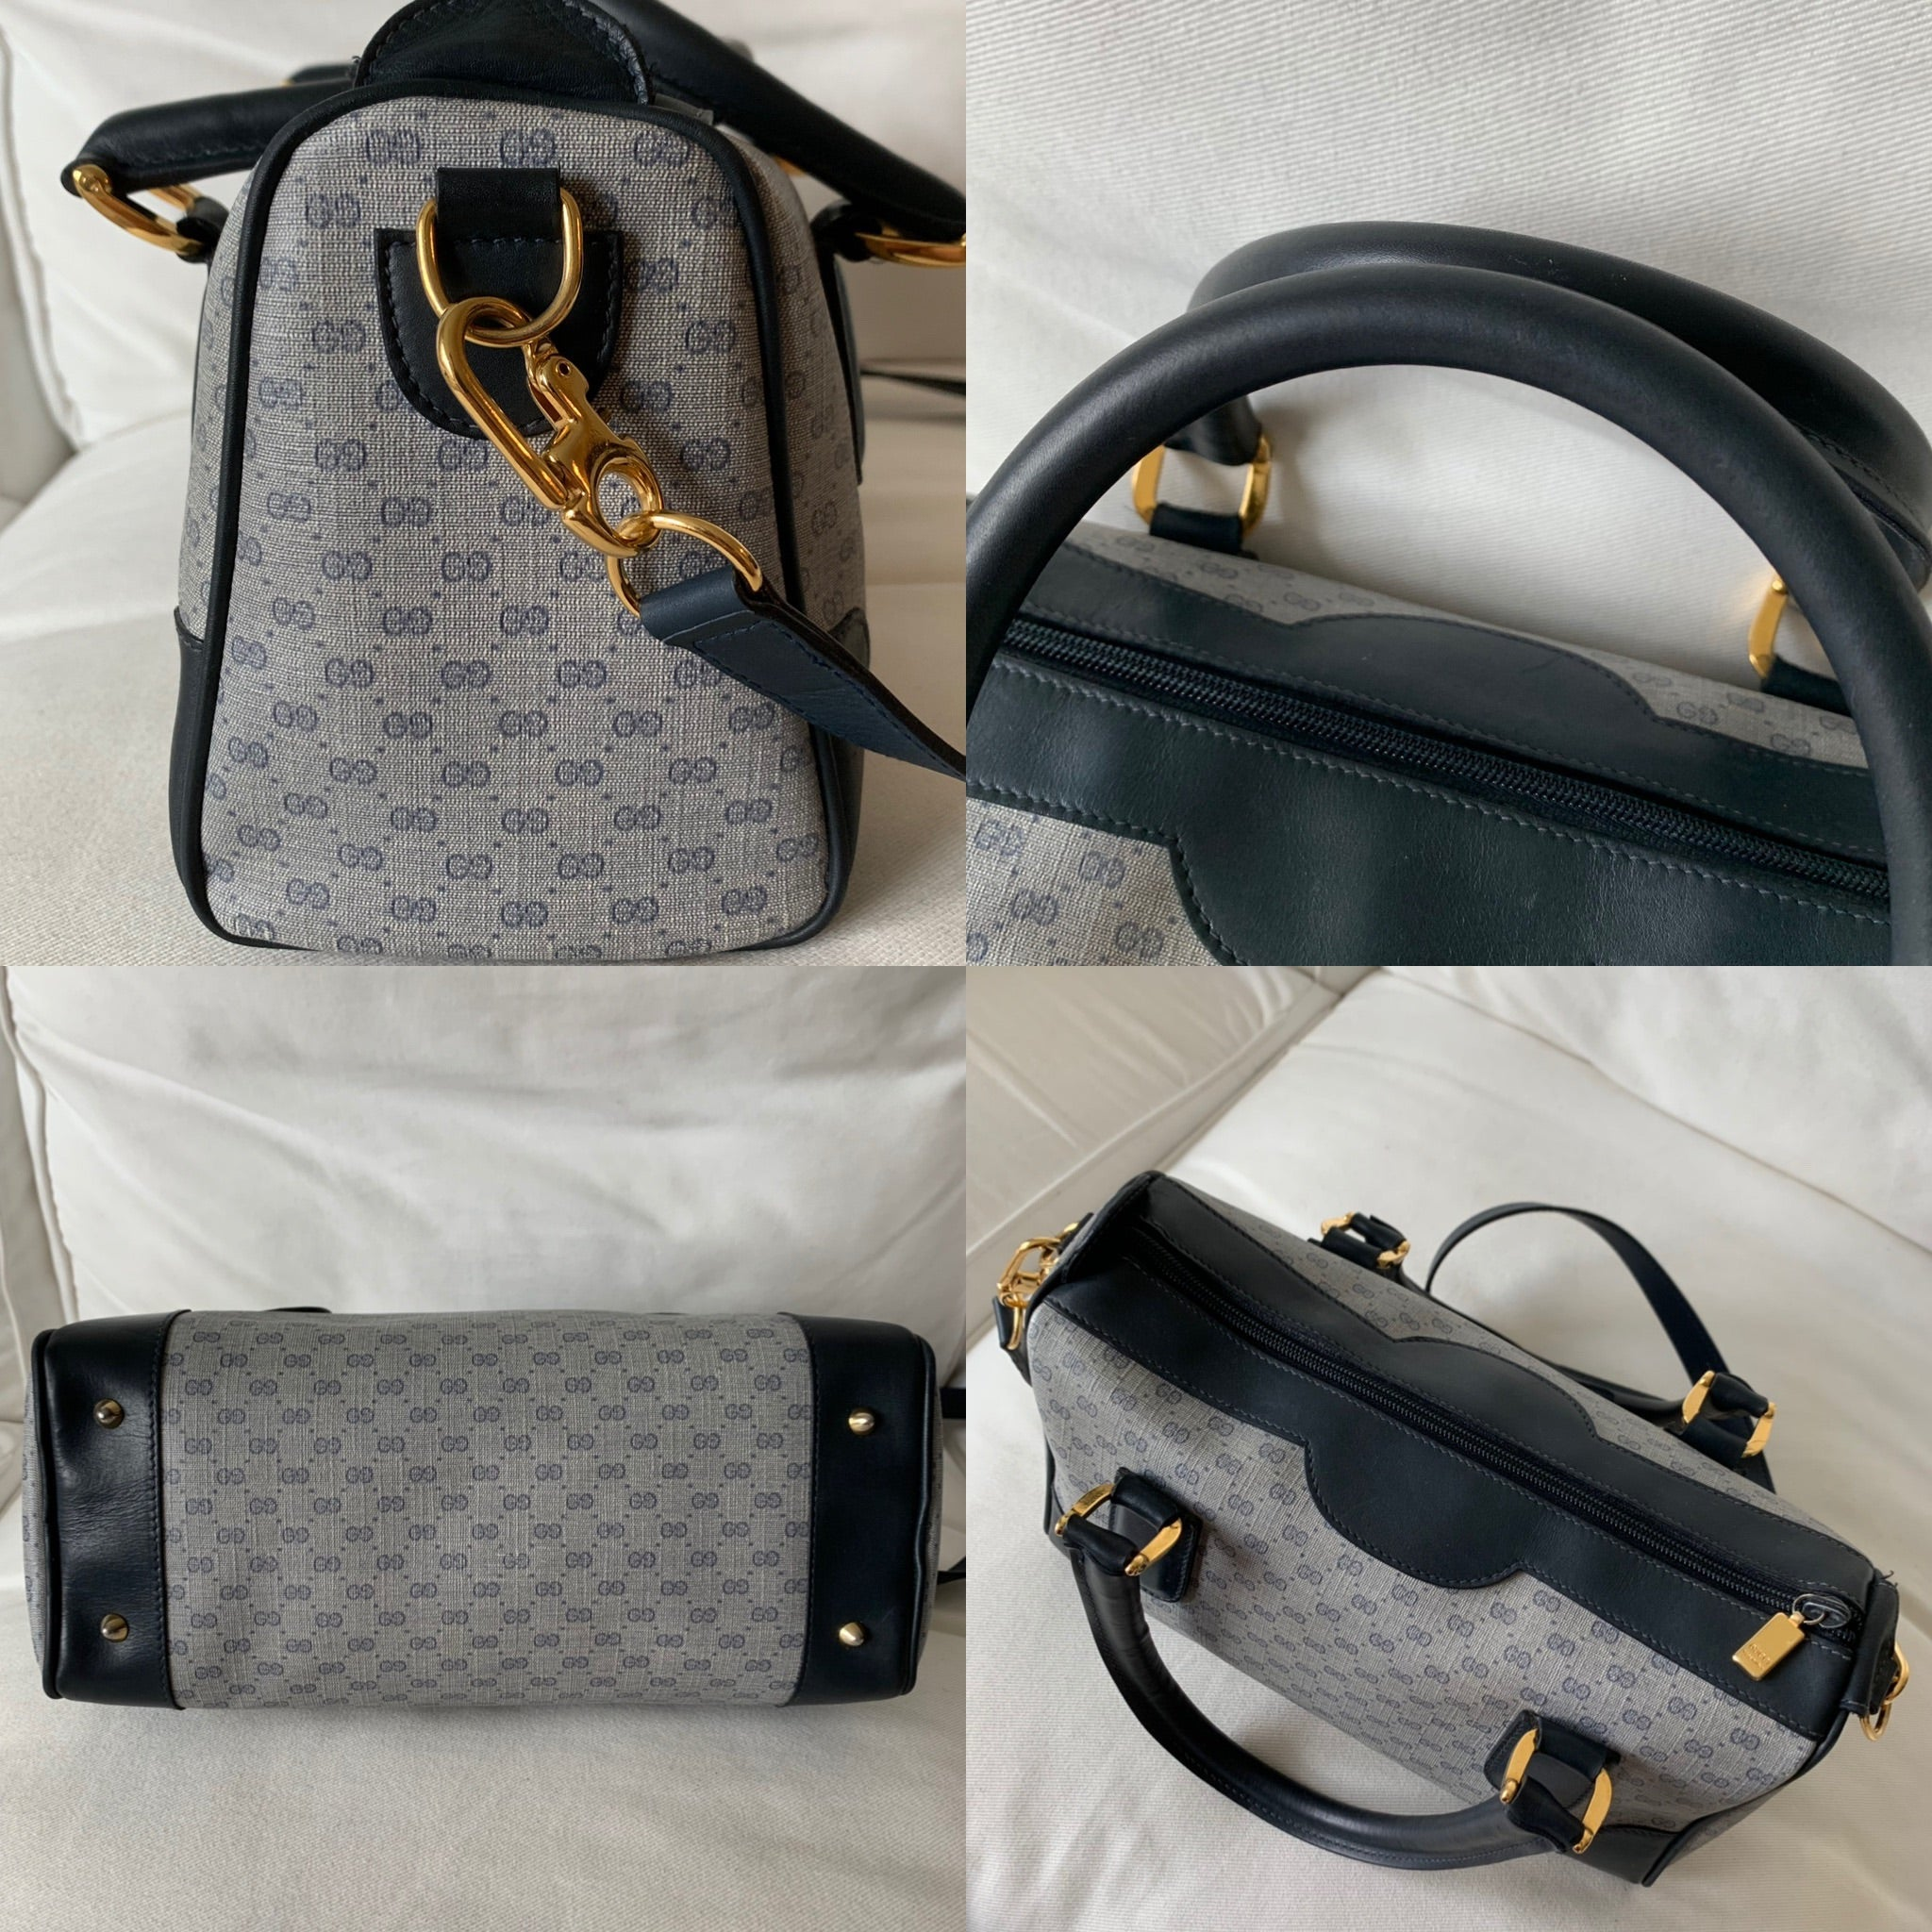 Vintage Gucci Bag